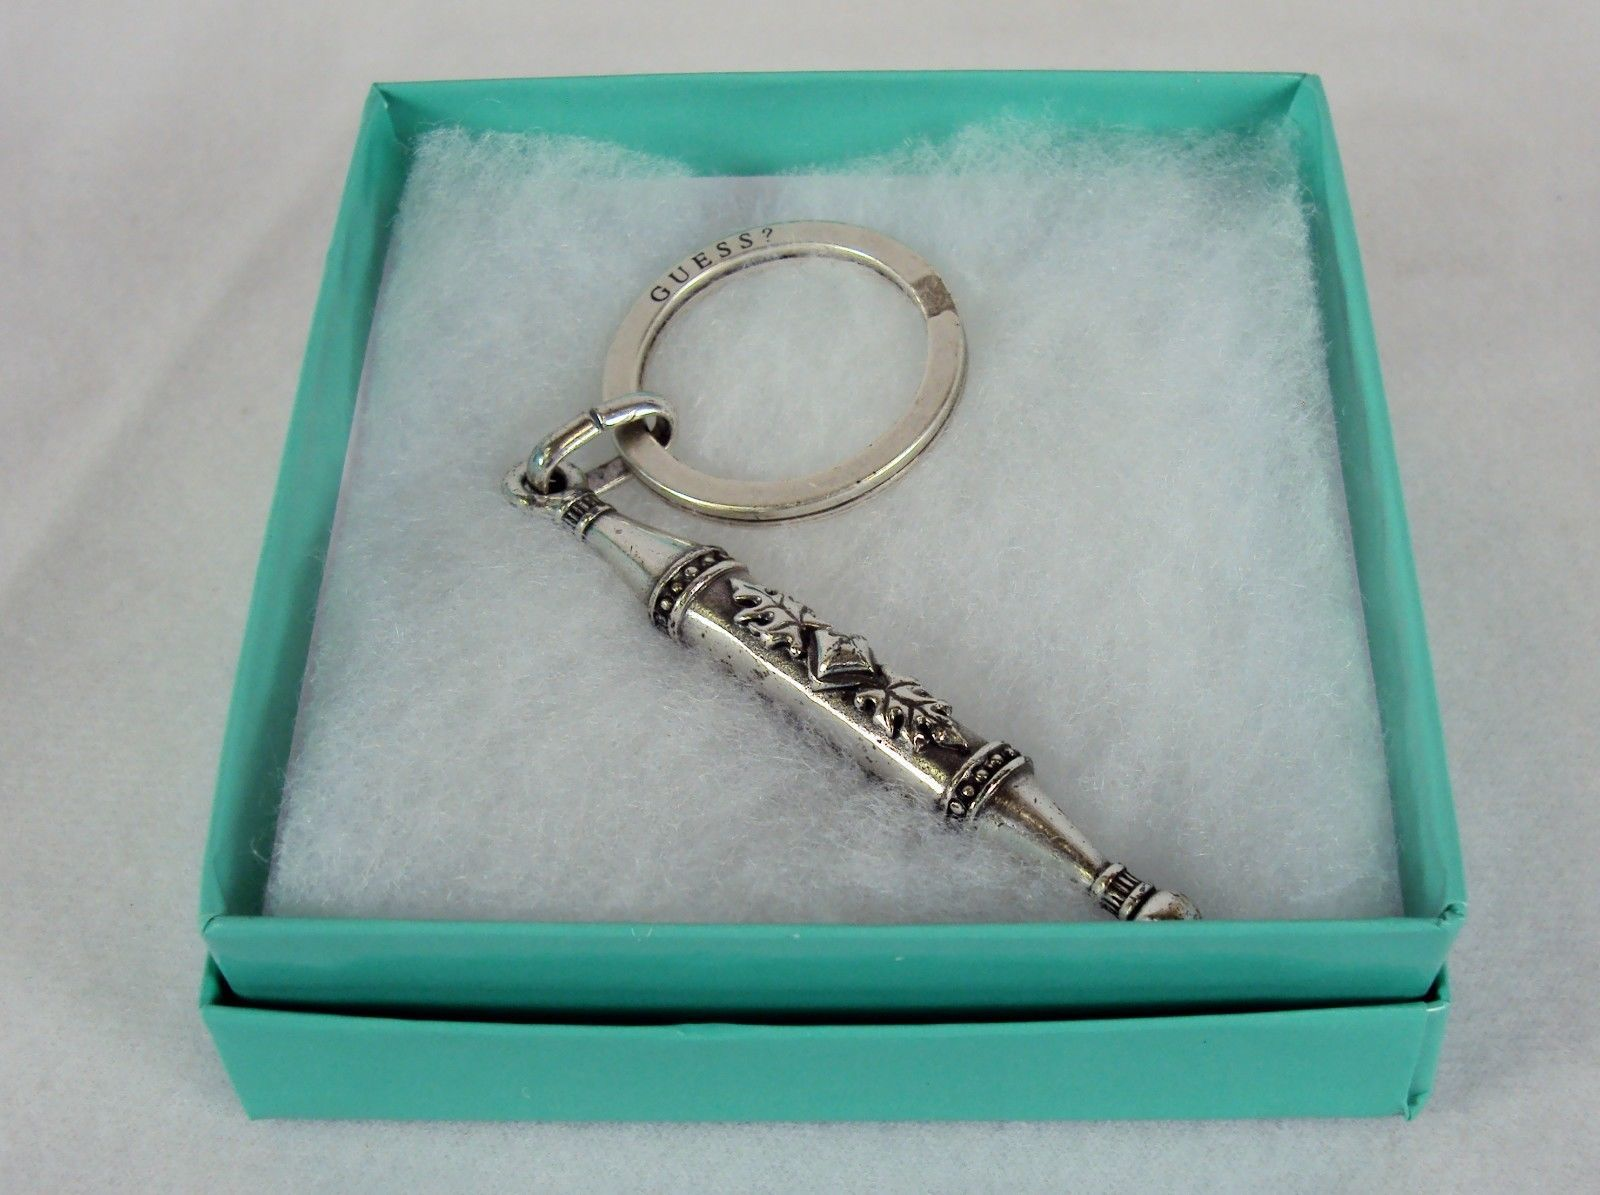 Stainless Steel Key Ring ~  GUESS Branded, Decorative Baton Shape ~ # 5230240 - $9.75